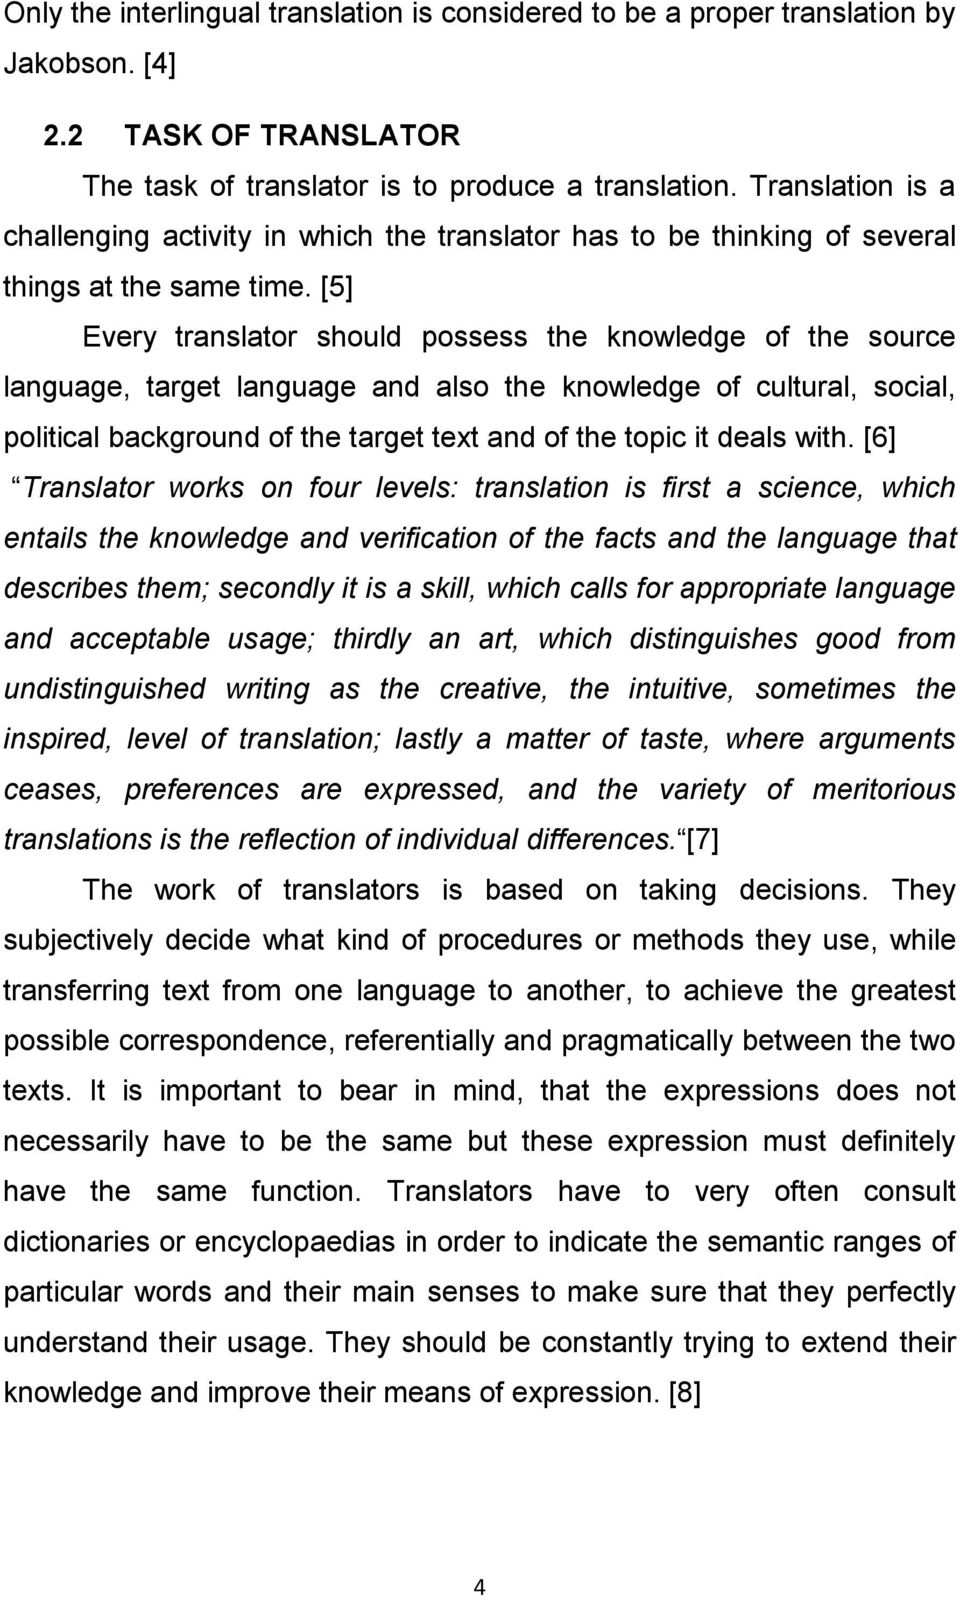 [5] Every translator should possess the knowledge of the source language, target language and also the knowledge of cultural, social, political background of the target text and of the topic it deals